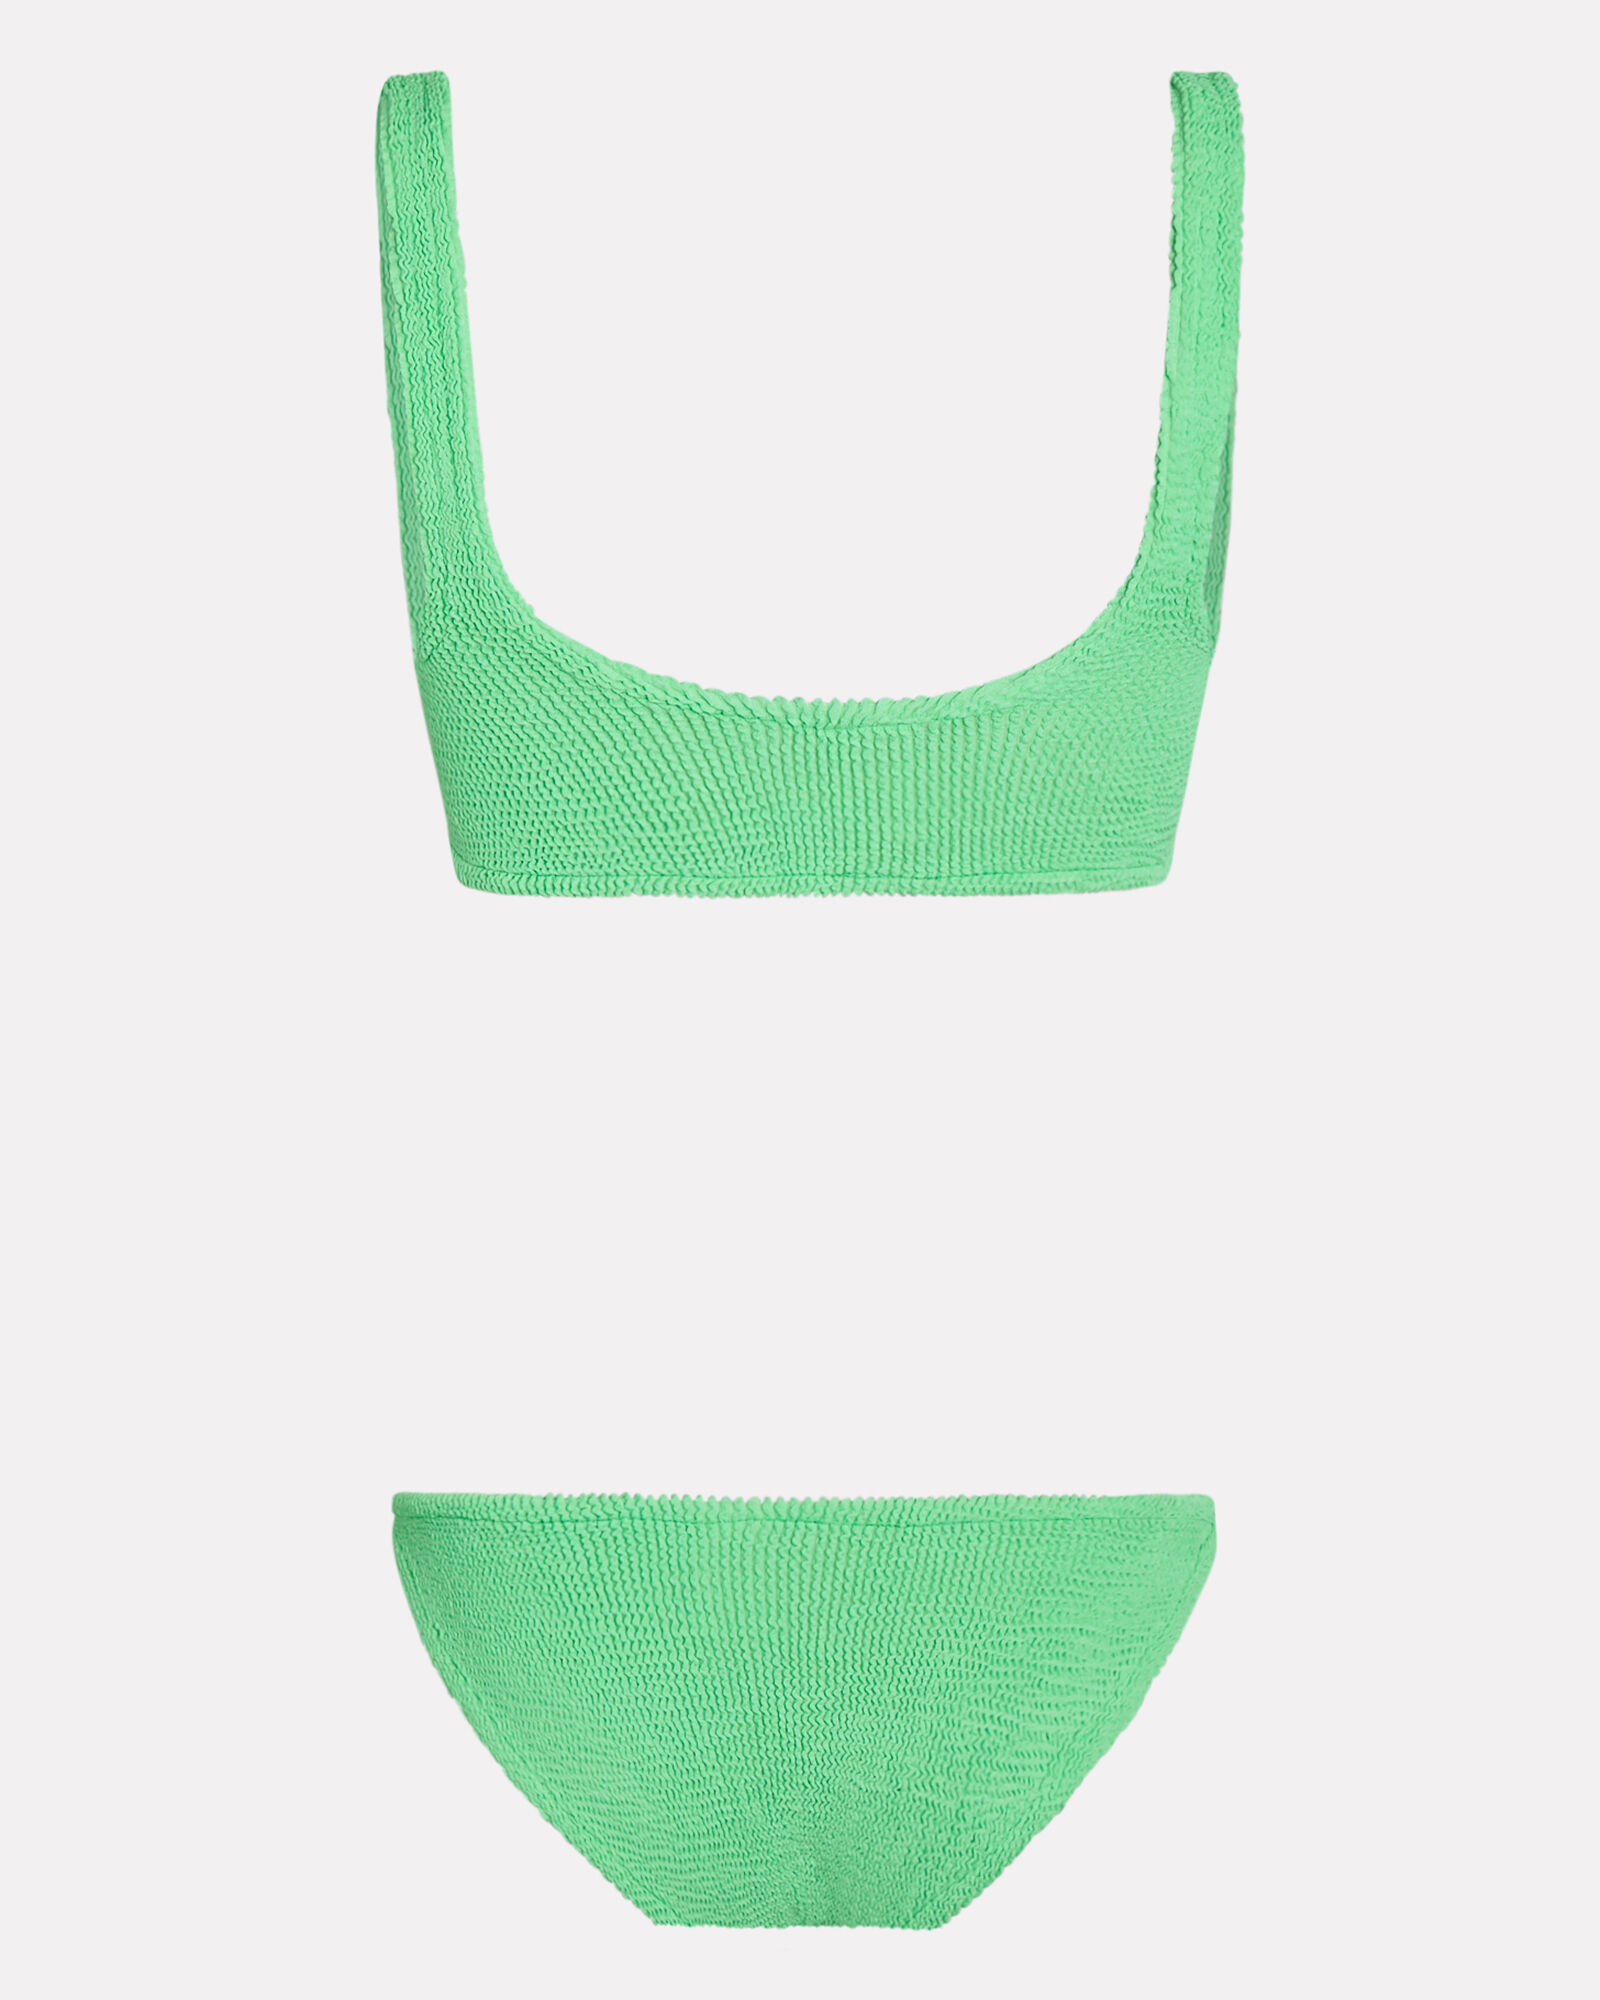 Xandra Bikini in Lime by Hunza G, available on intermixonline.com for $180 Kylie Jenner Top SIMILAR PRODUCT